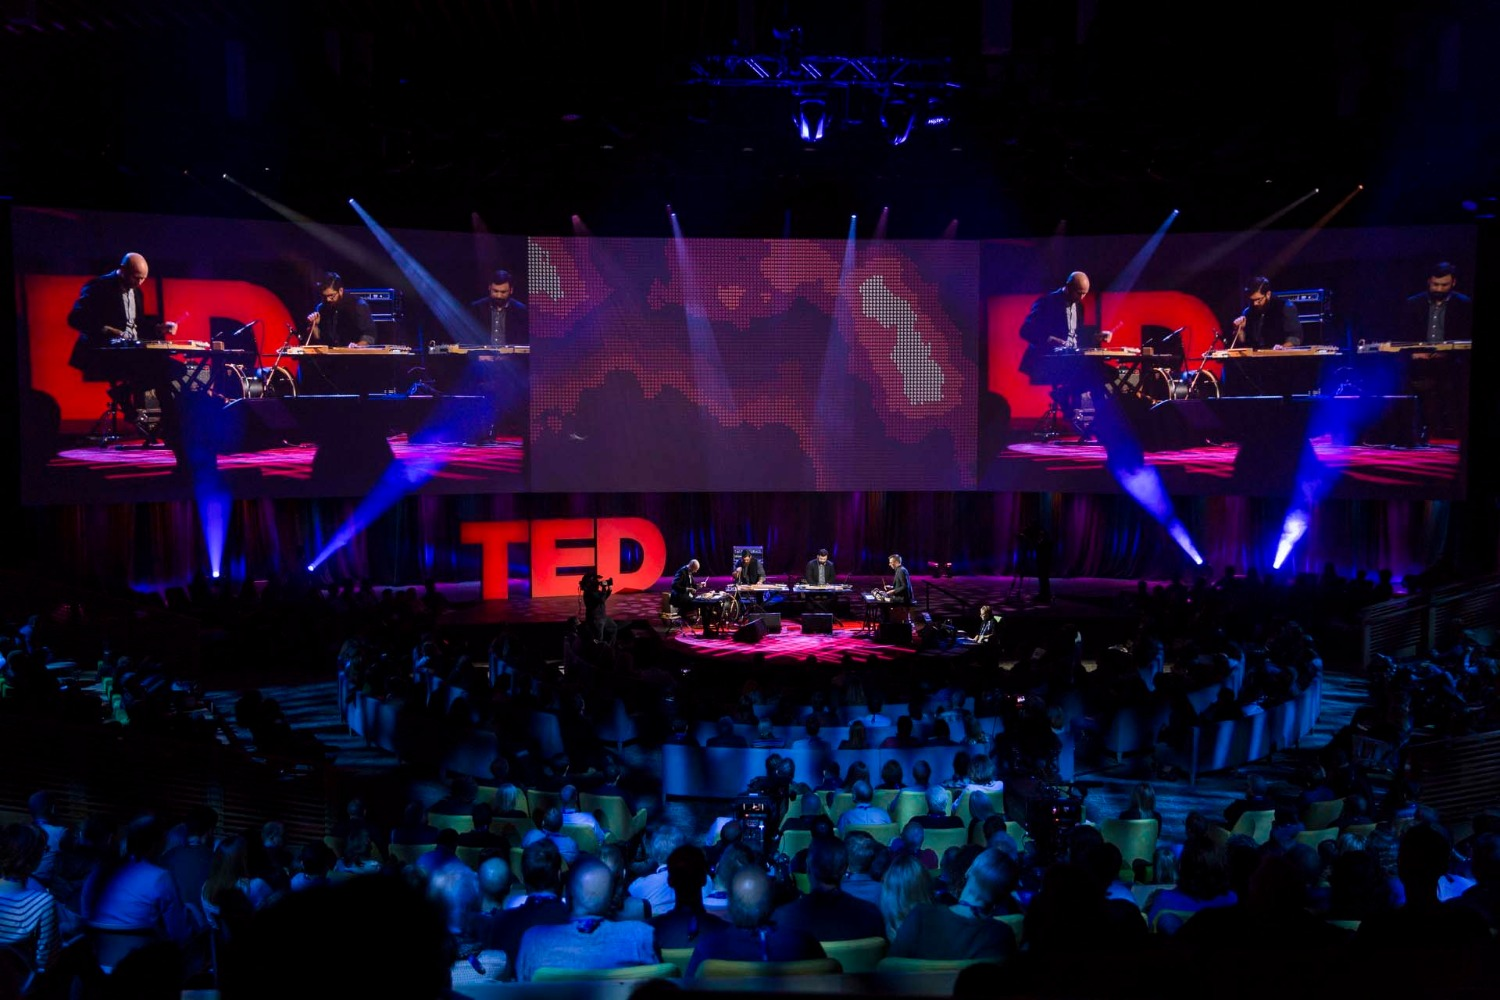 So Percussion performs at TED2016 - Dream, February 15-19, 2016, Vancouver Convention Center, Vancouver, Canada. Photo: Marla Aufmuth / TED